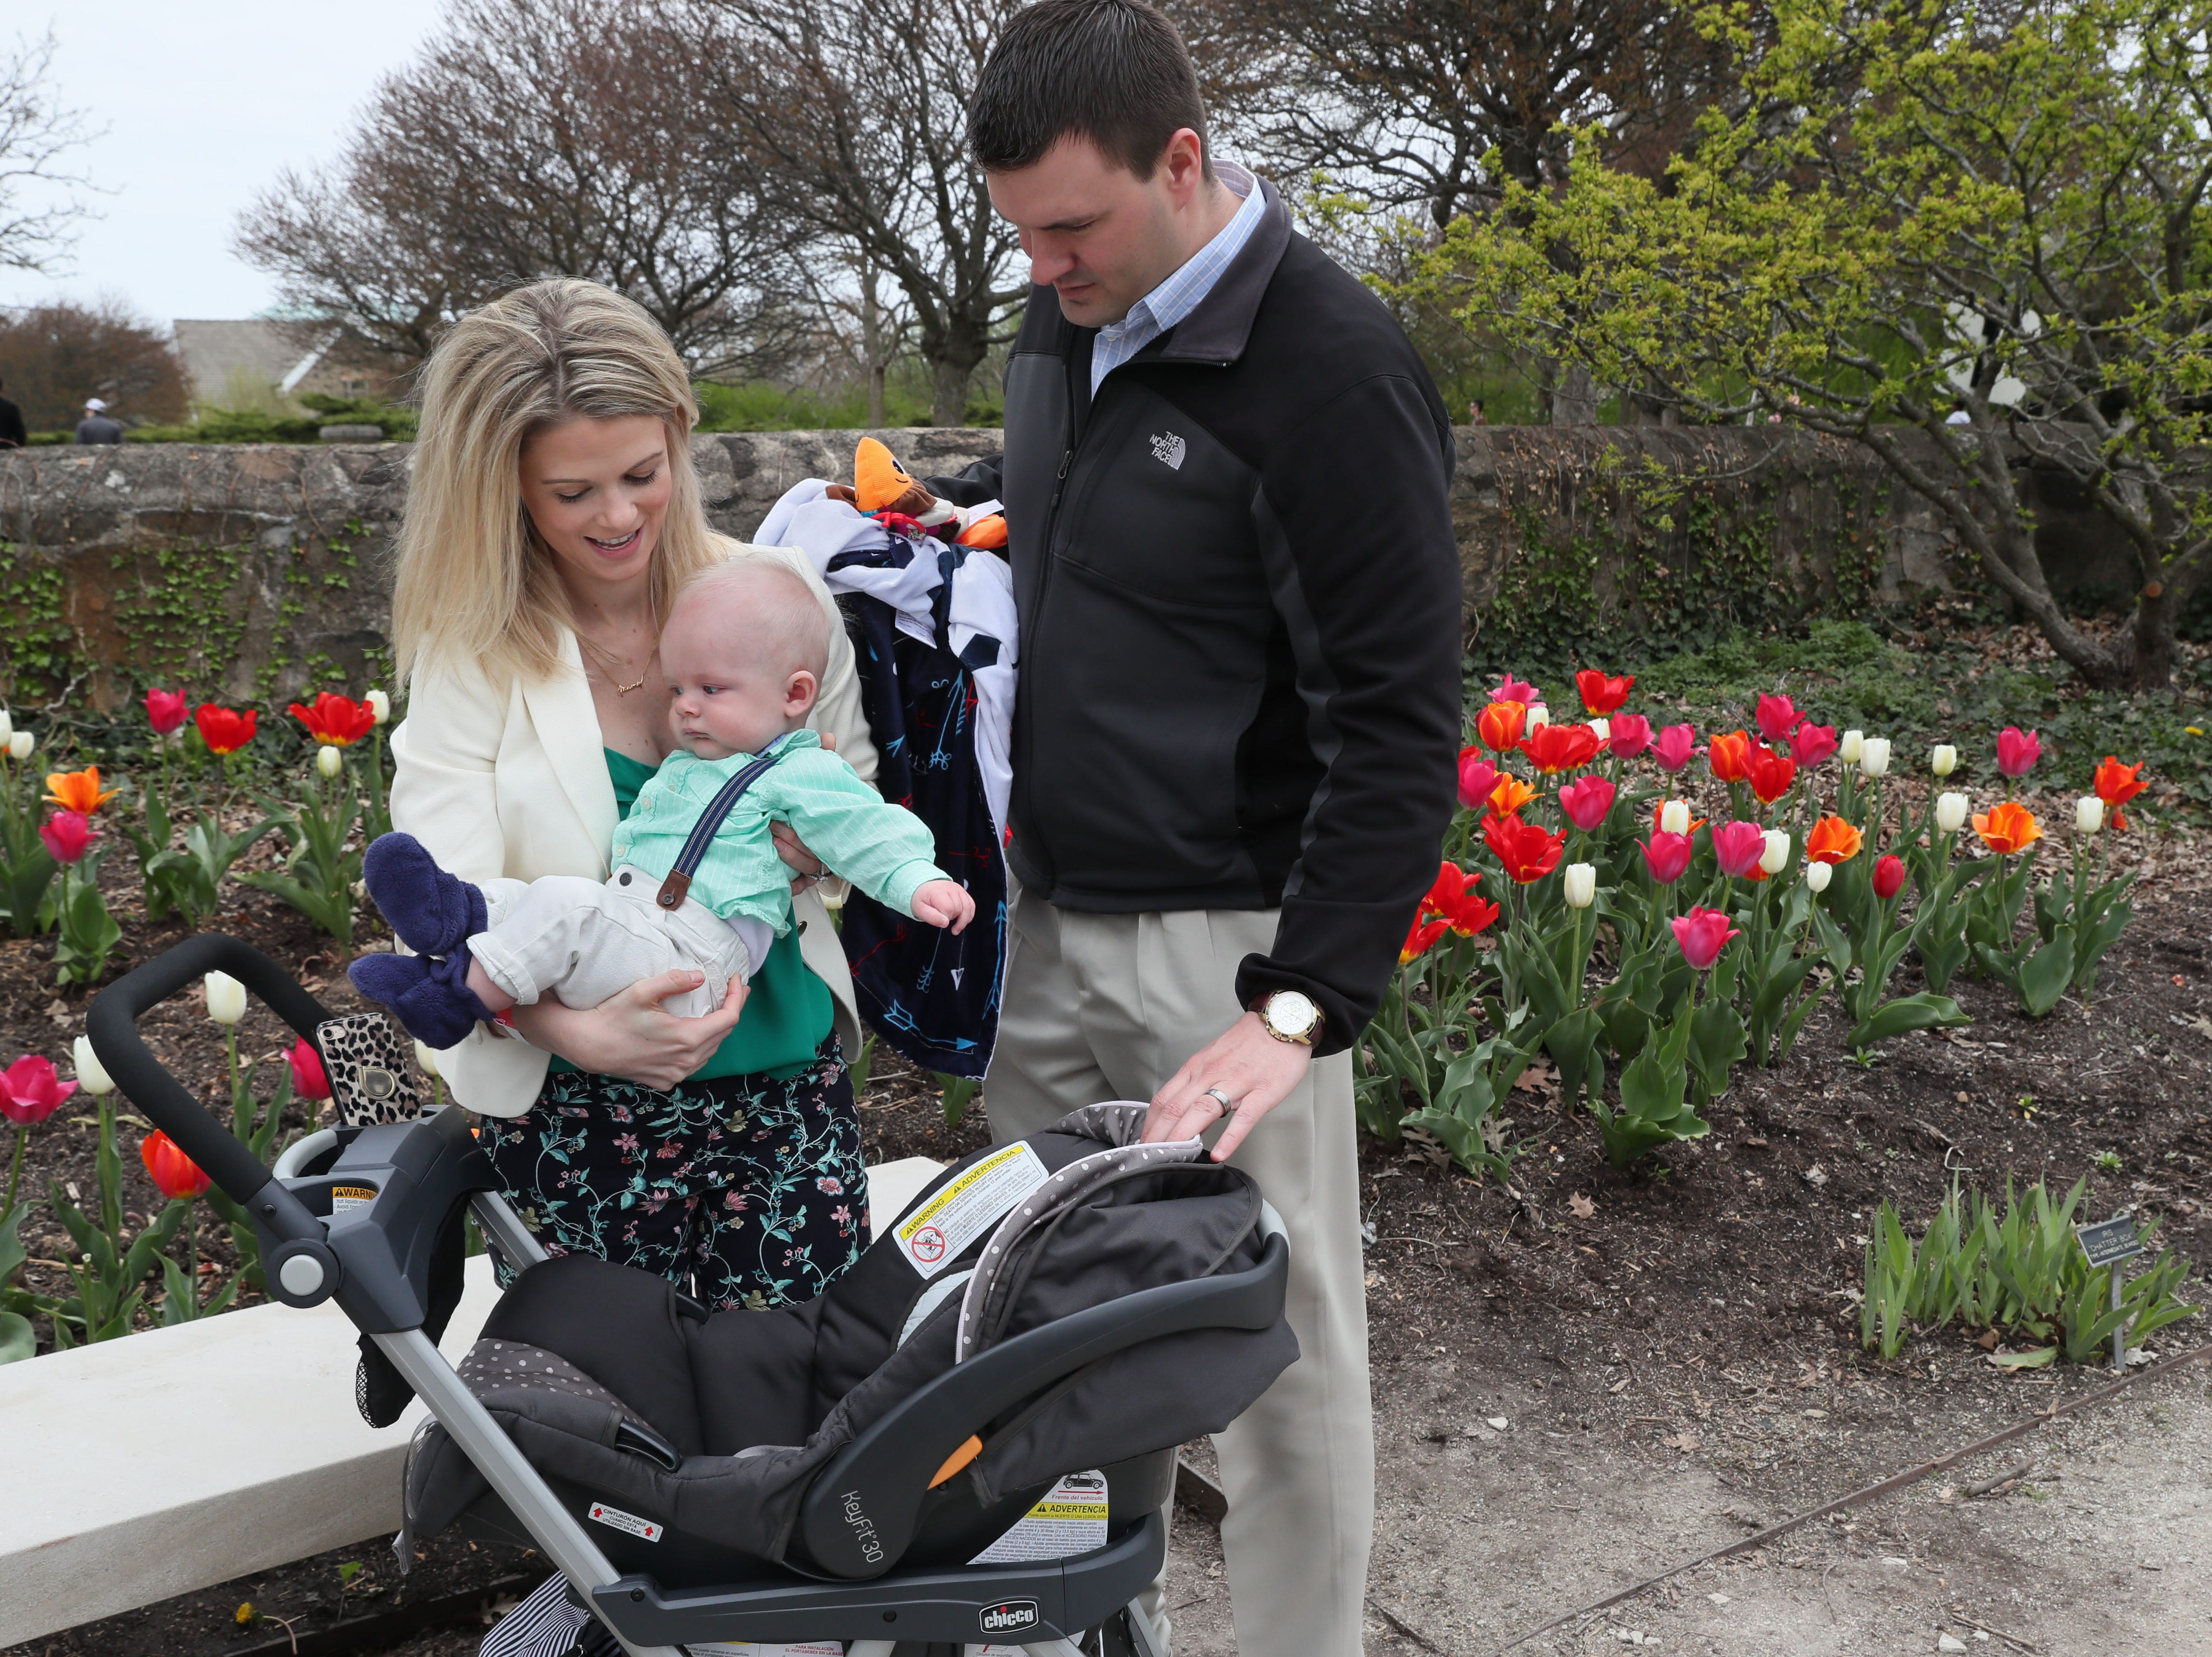 Ashley and Mark Berghuis of Kansasville take their 5-month-old son, Landon, out of his stroller at the Boerner Botanical Gardens for Mother's Day. The event, hosted by the Friends of Boerner Botanical Gardens, included activities for children where they could make gifts for their mothers and grandmothers. A brunch also was available with Zilli Hospitality Group, and the gardens were blooming with spring flowers.